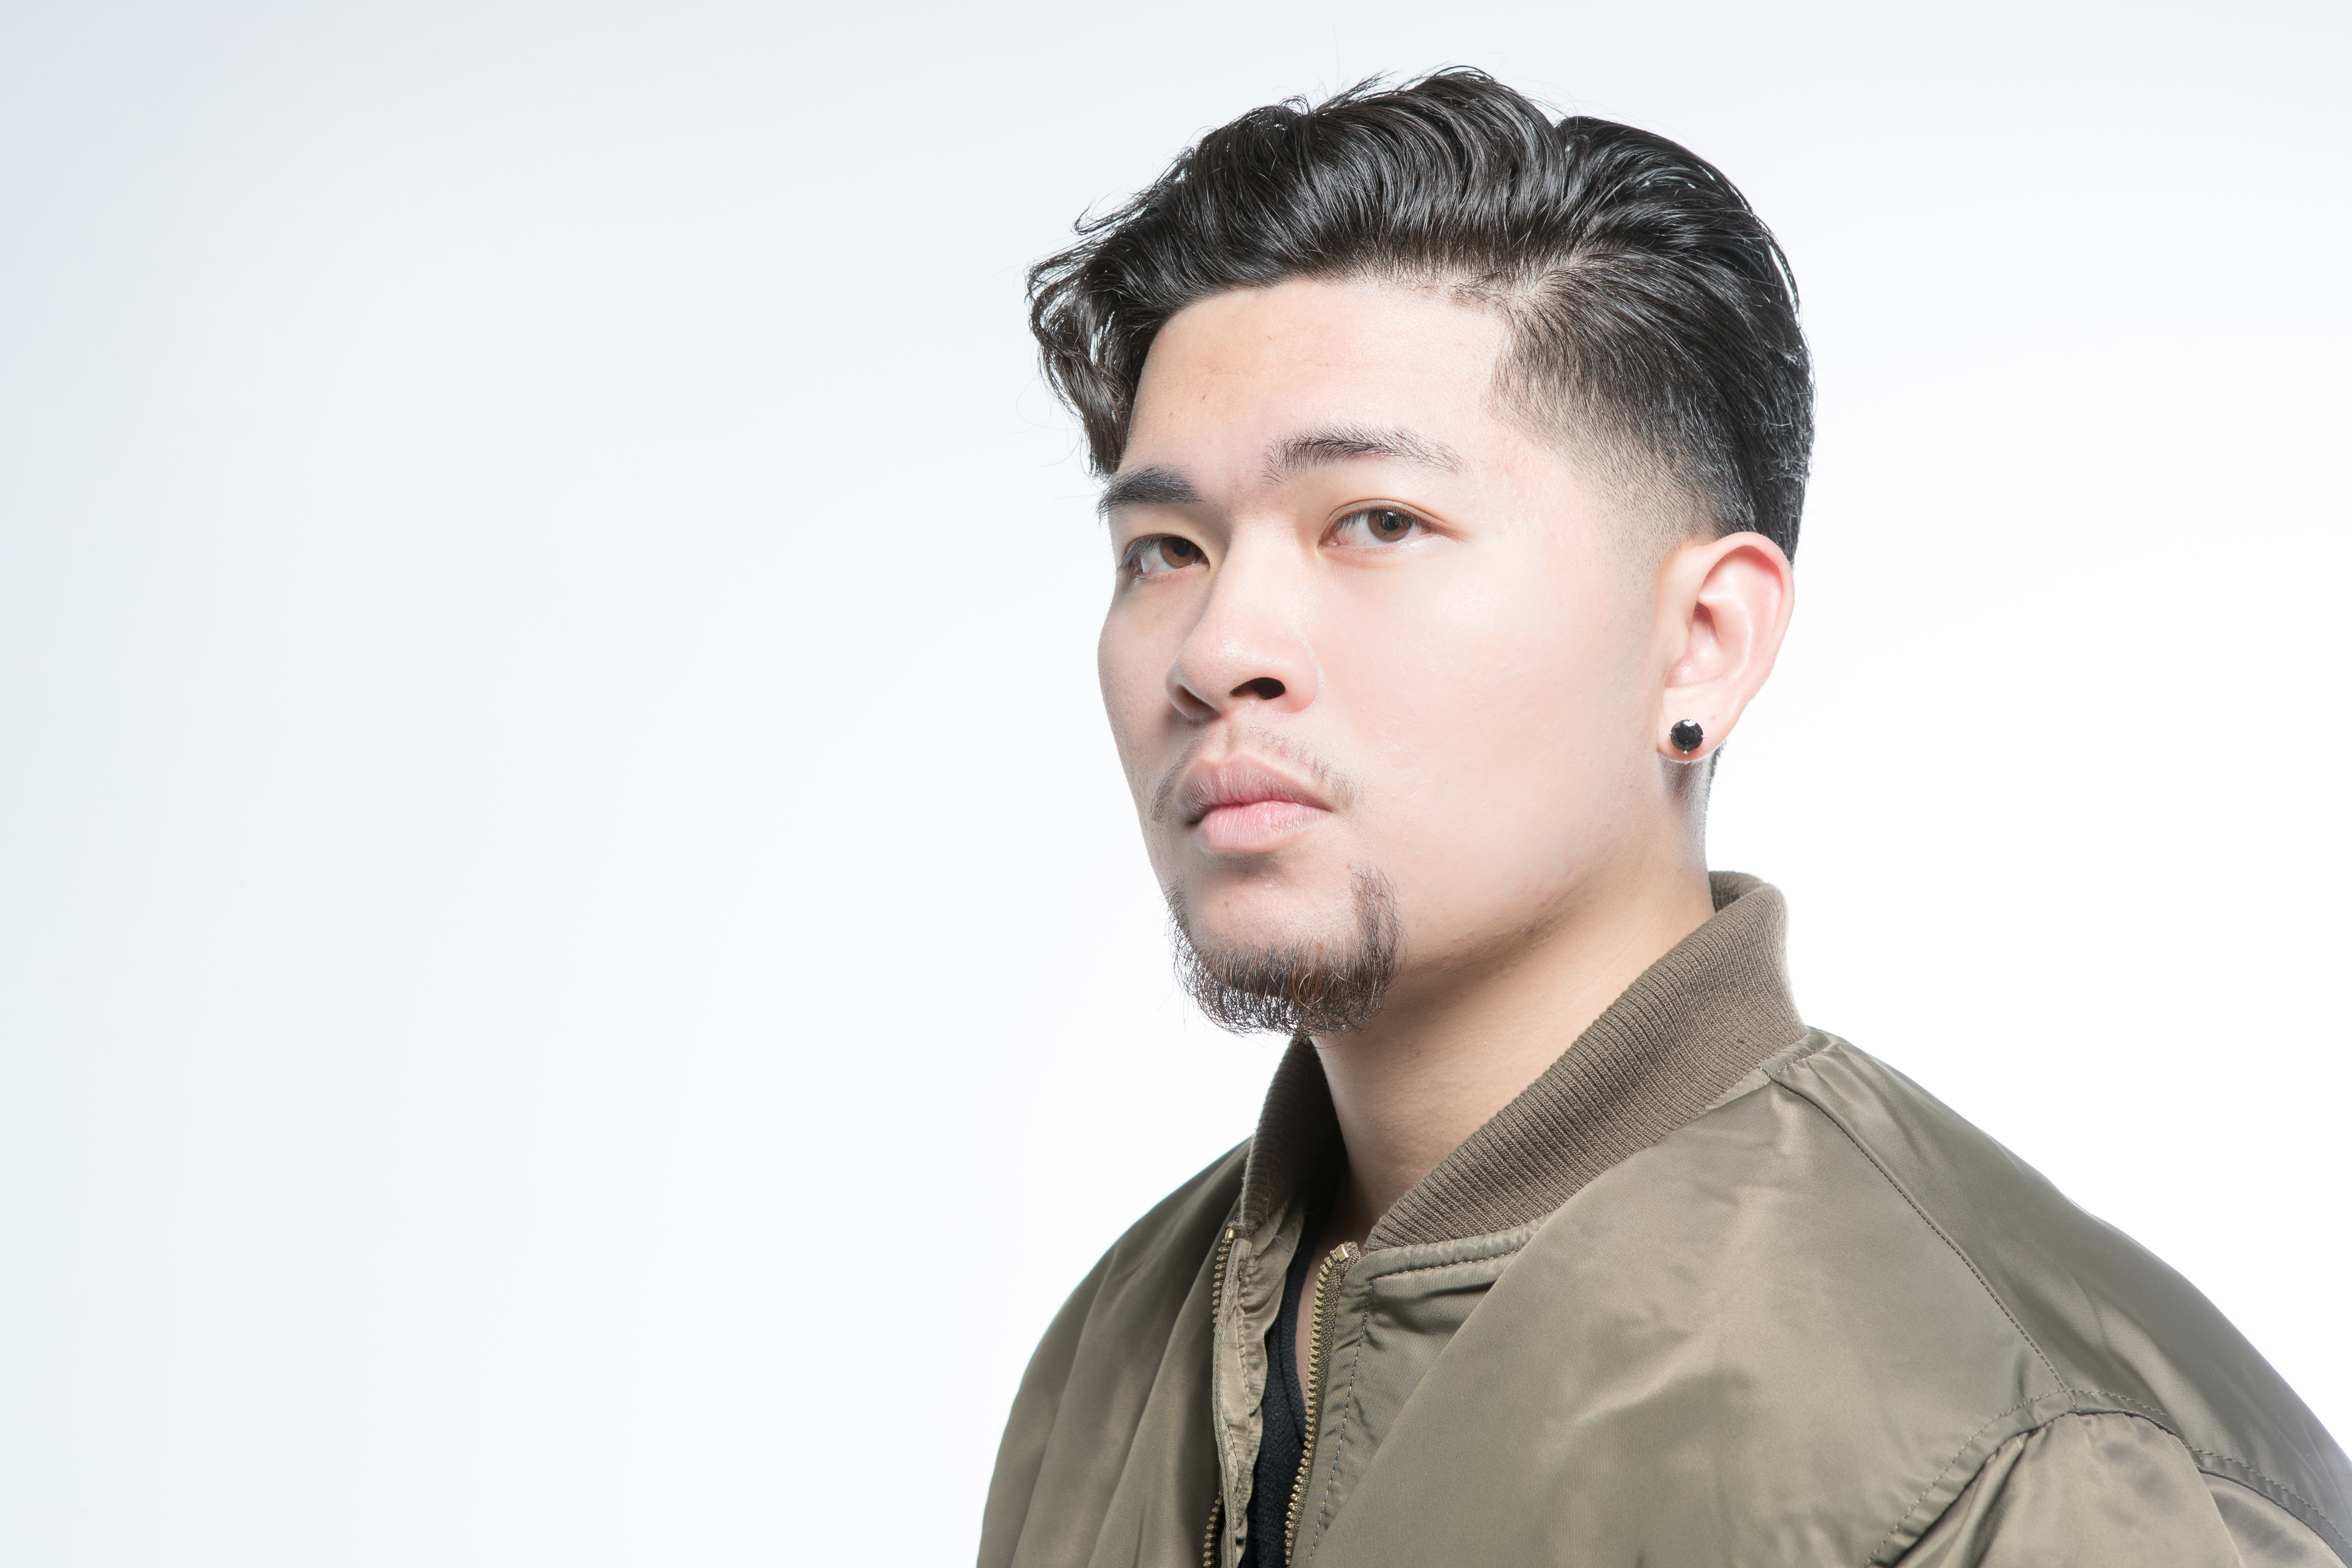 Model wearing a bomber jacket showing a short haircut and groomed goatee